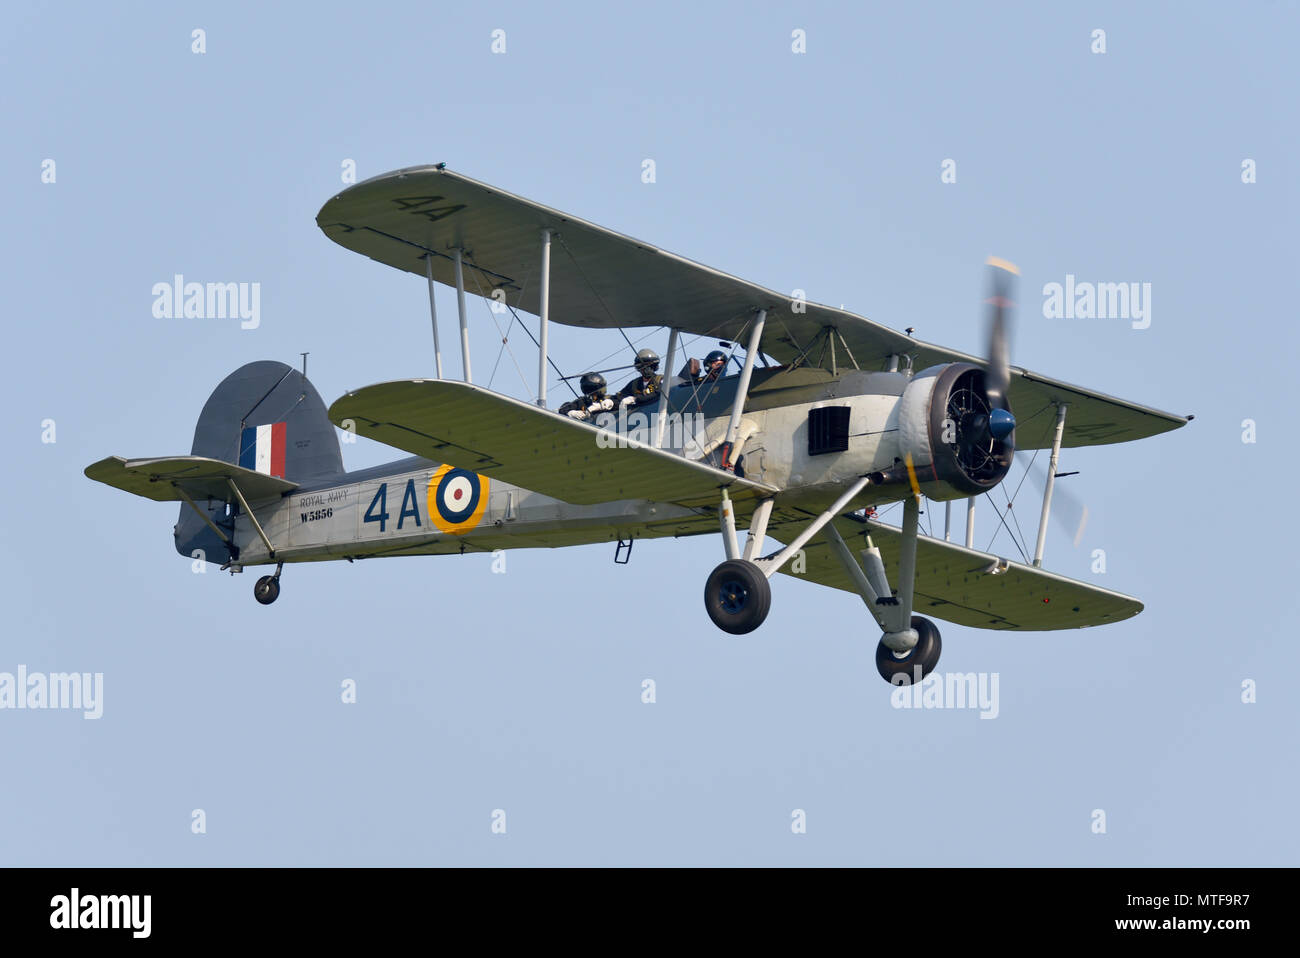 Fairey Swordfish plane flying at an airshow. Royal Navy Fleet Air Arm biplane carrier borne aircraft used in the Second World War as torpedo bomber - Stock Image